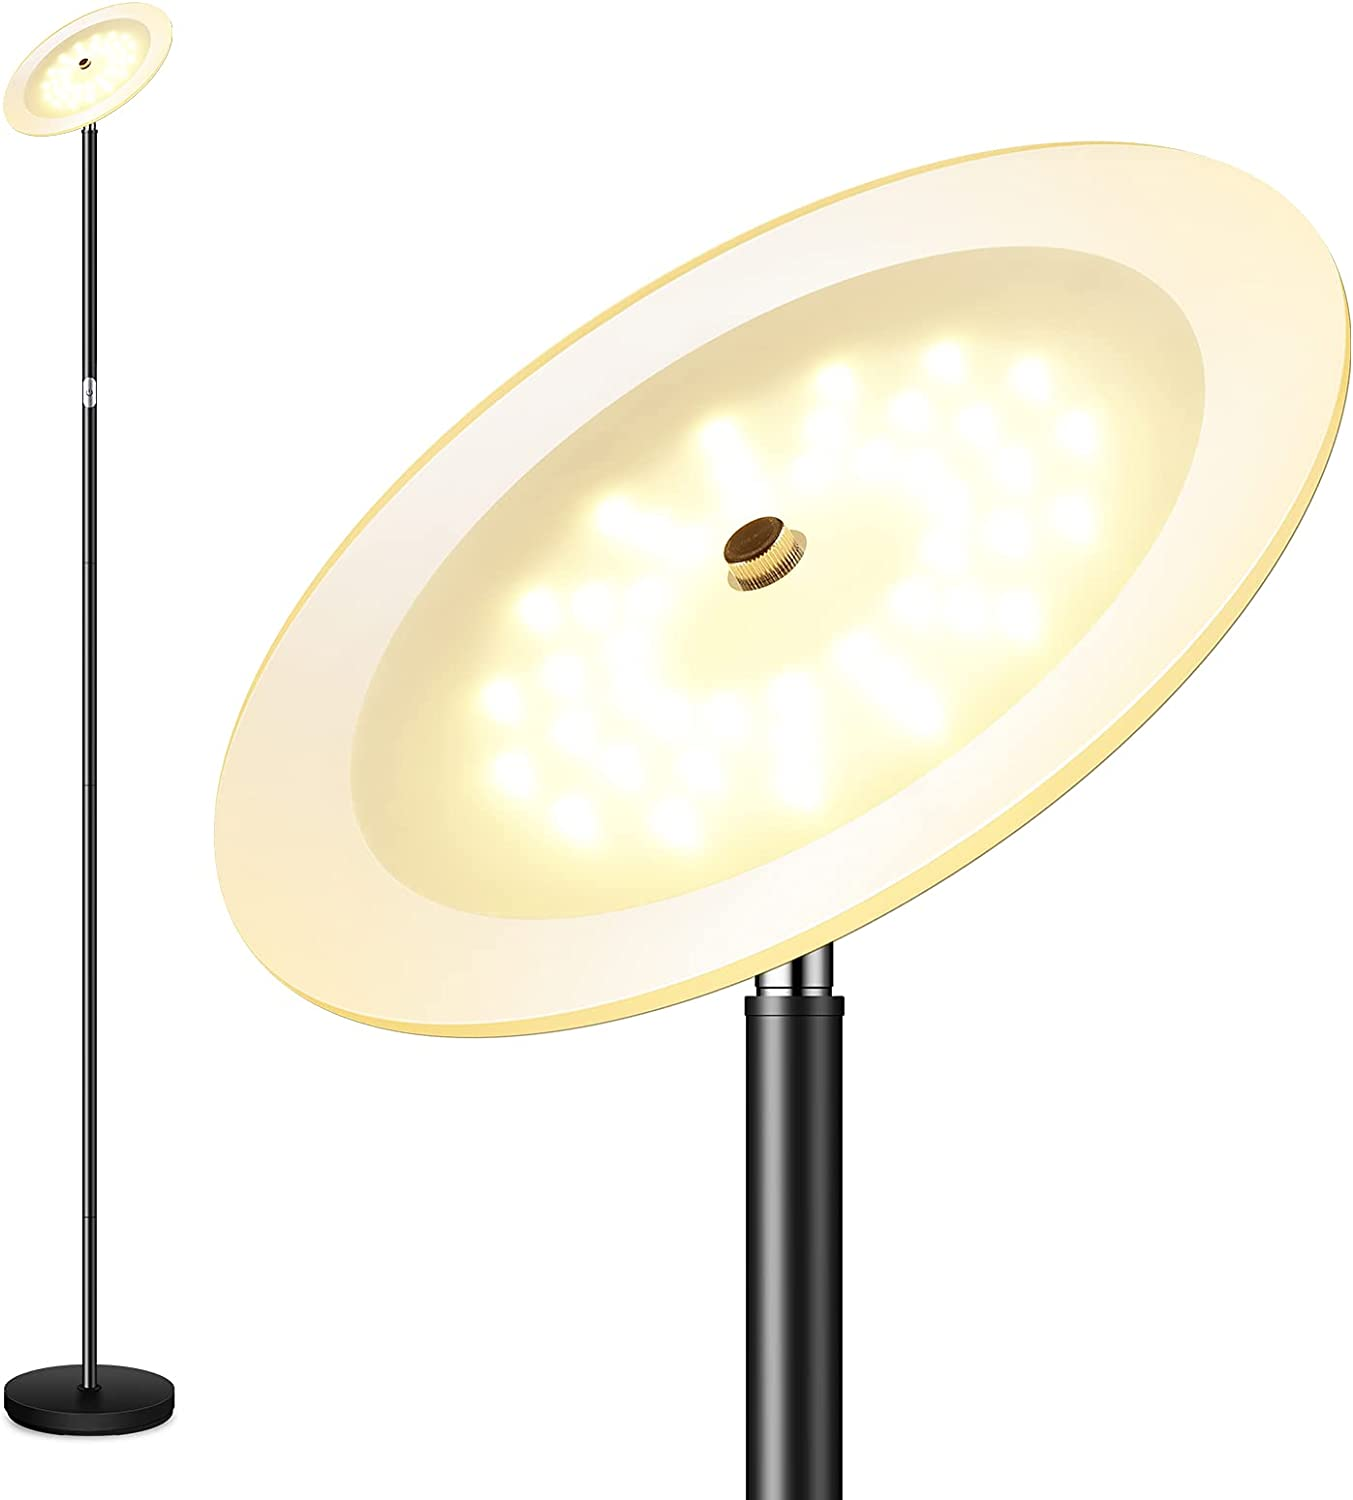 Floor Lamp Torchiere 20W LED La Bright sold Max 60% OFF out 2000LM